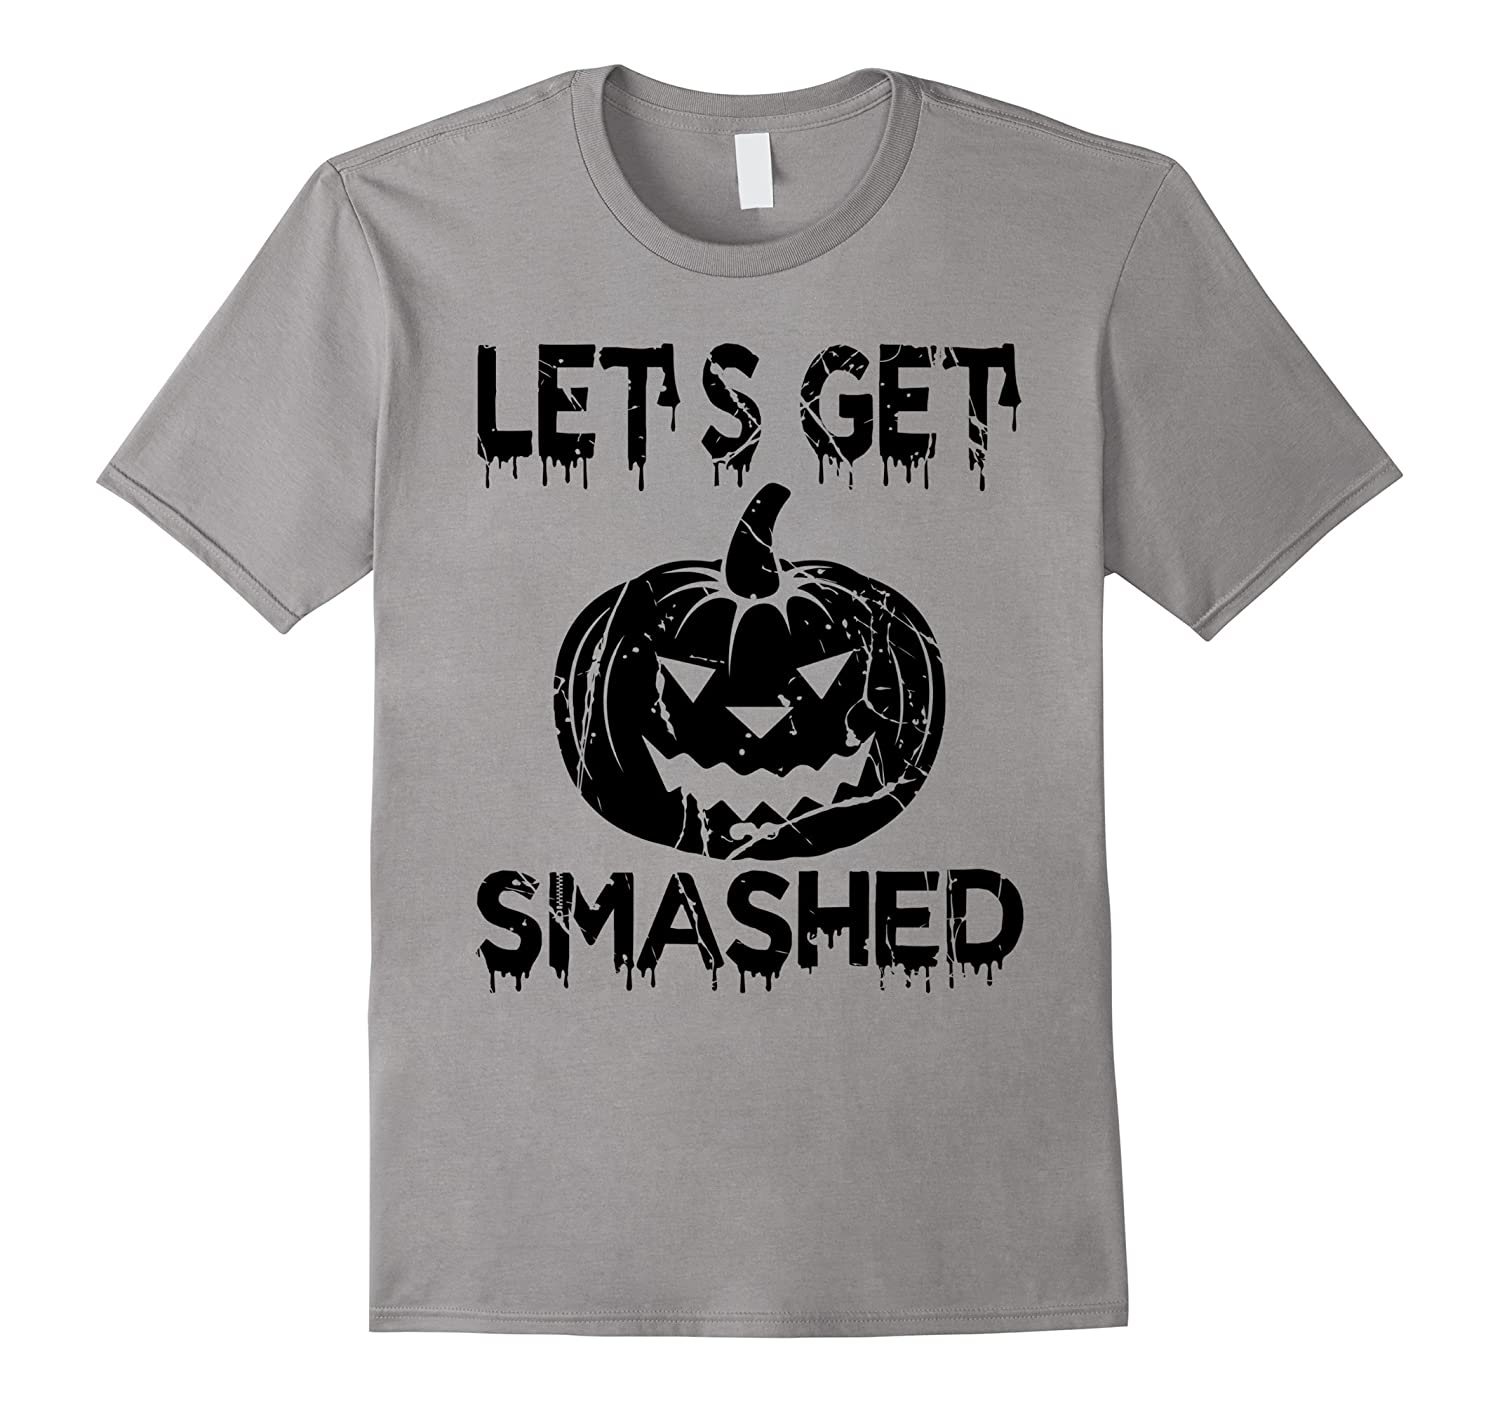 8a6daa51 Let's Get Smashed - Scary Halloween T-Shirt Pumpkin Costume-ANZ ...